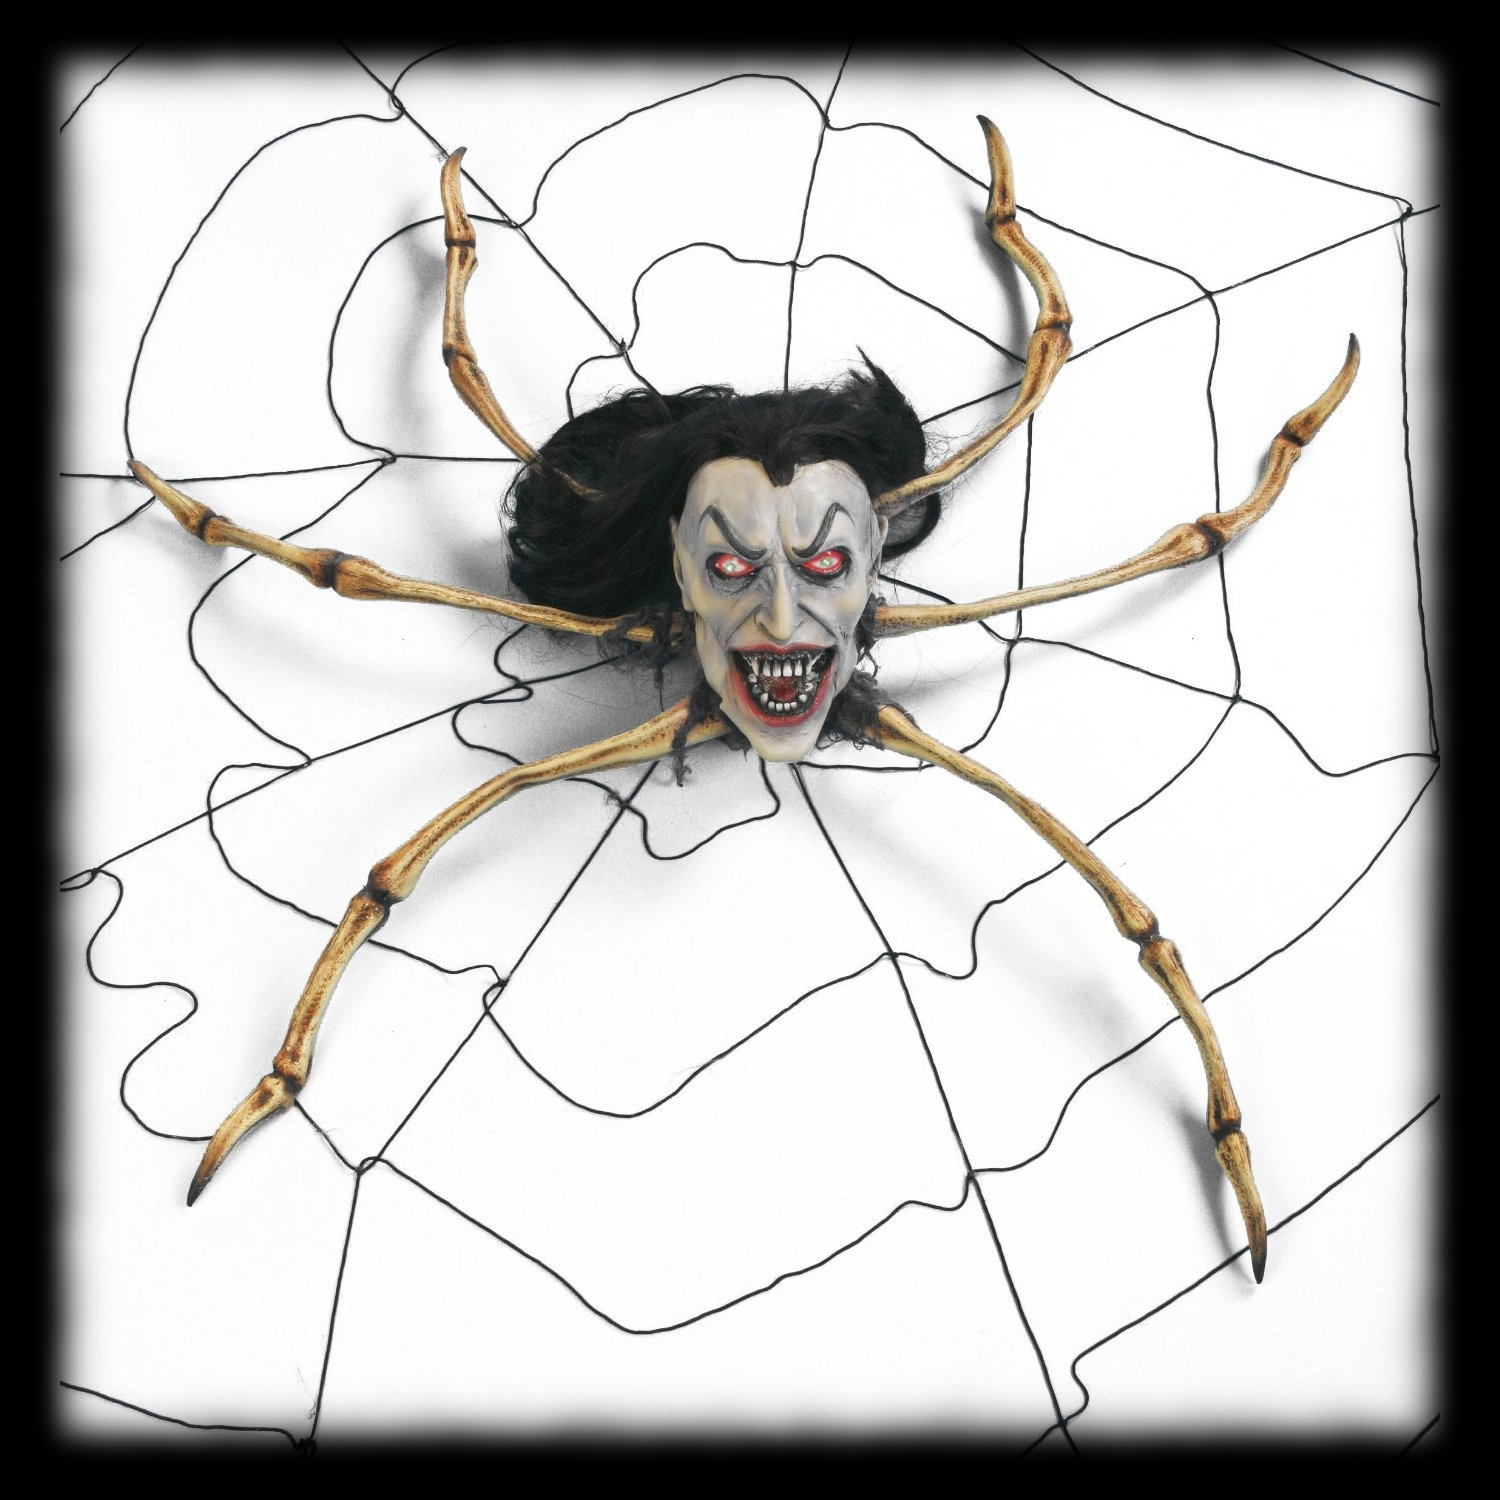 Animated Spider Vampire Halloween Party Decoration Idea